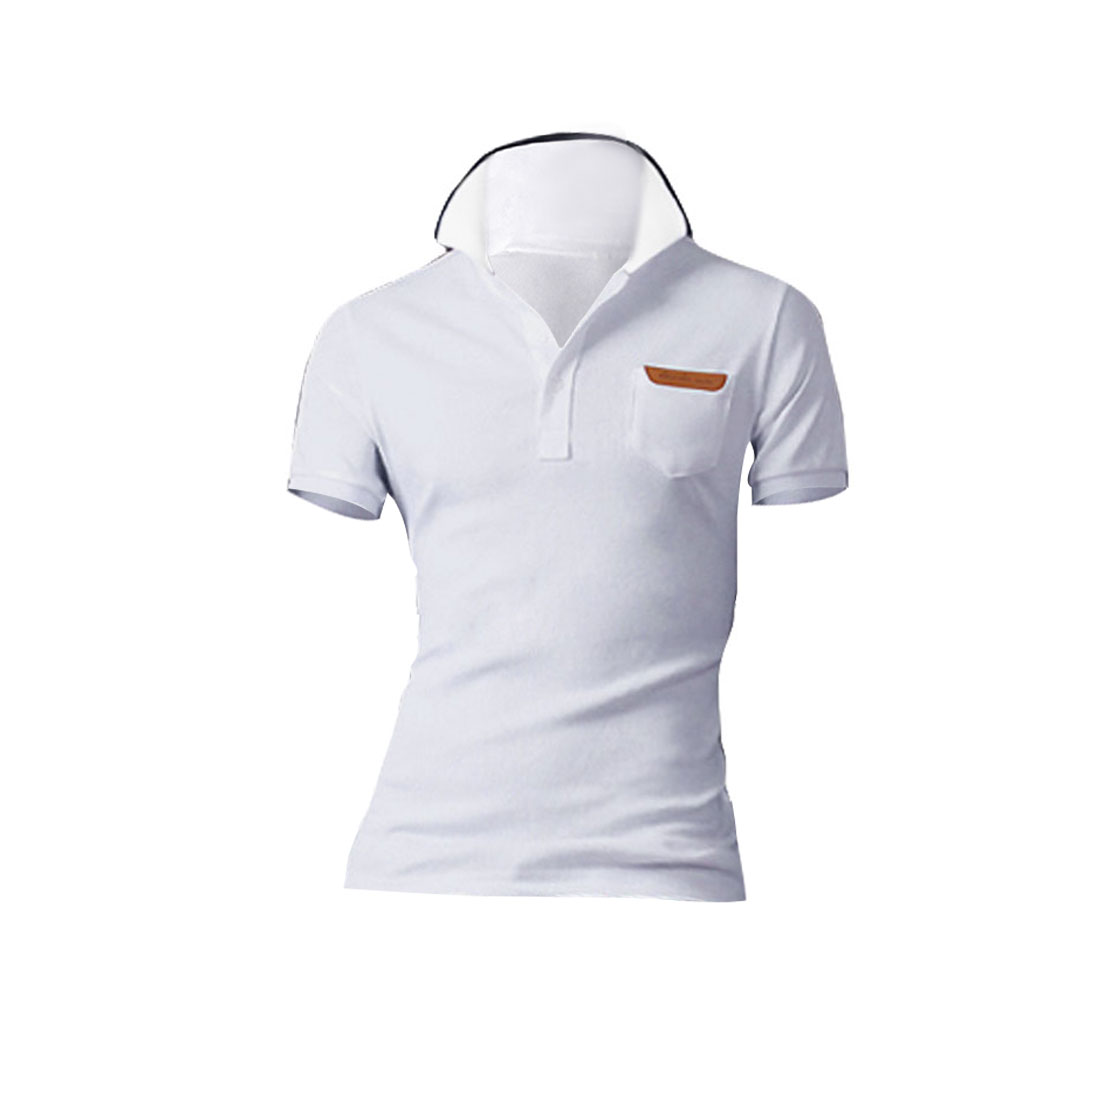 Men Color Contrast Short-sleeved Buttons Up Front Shirts White M